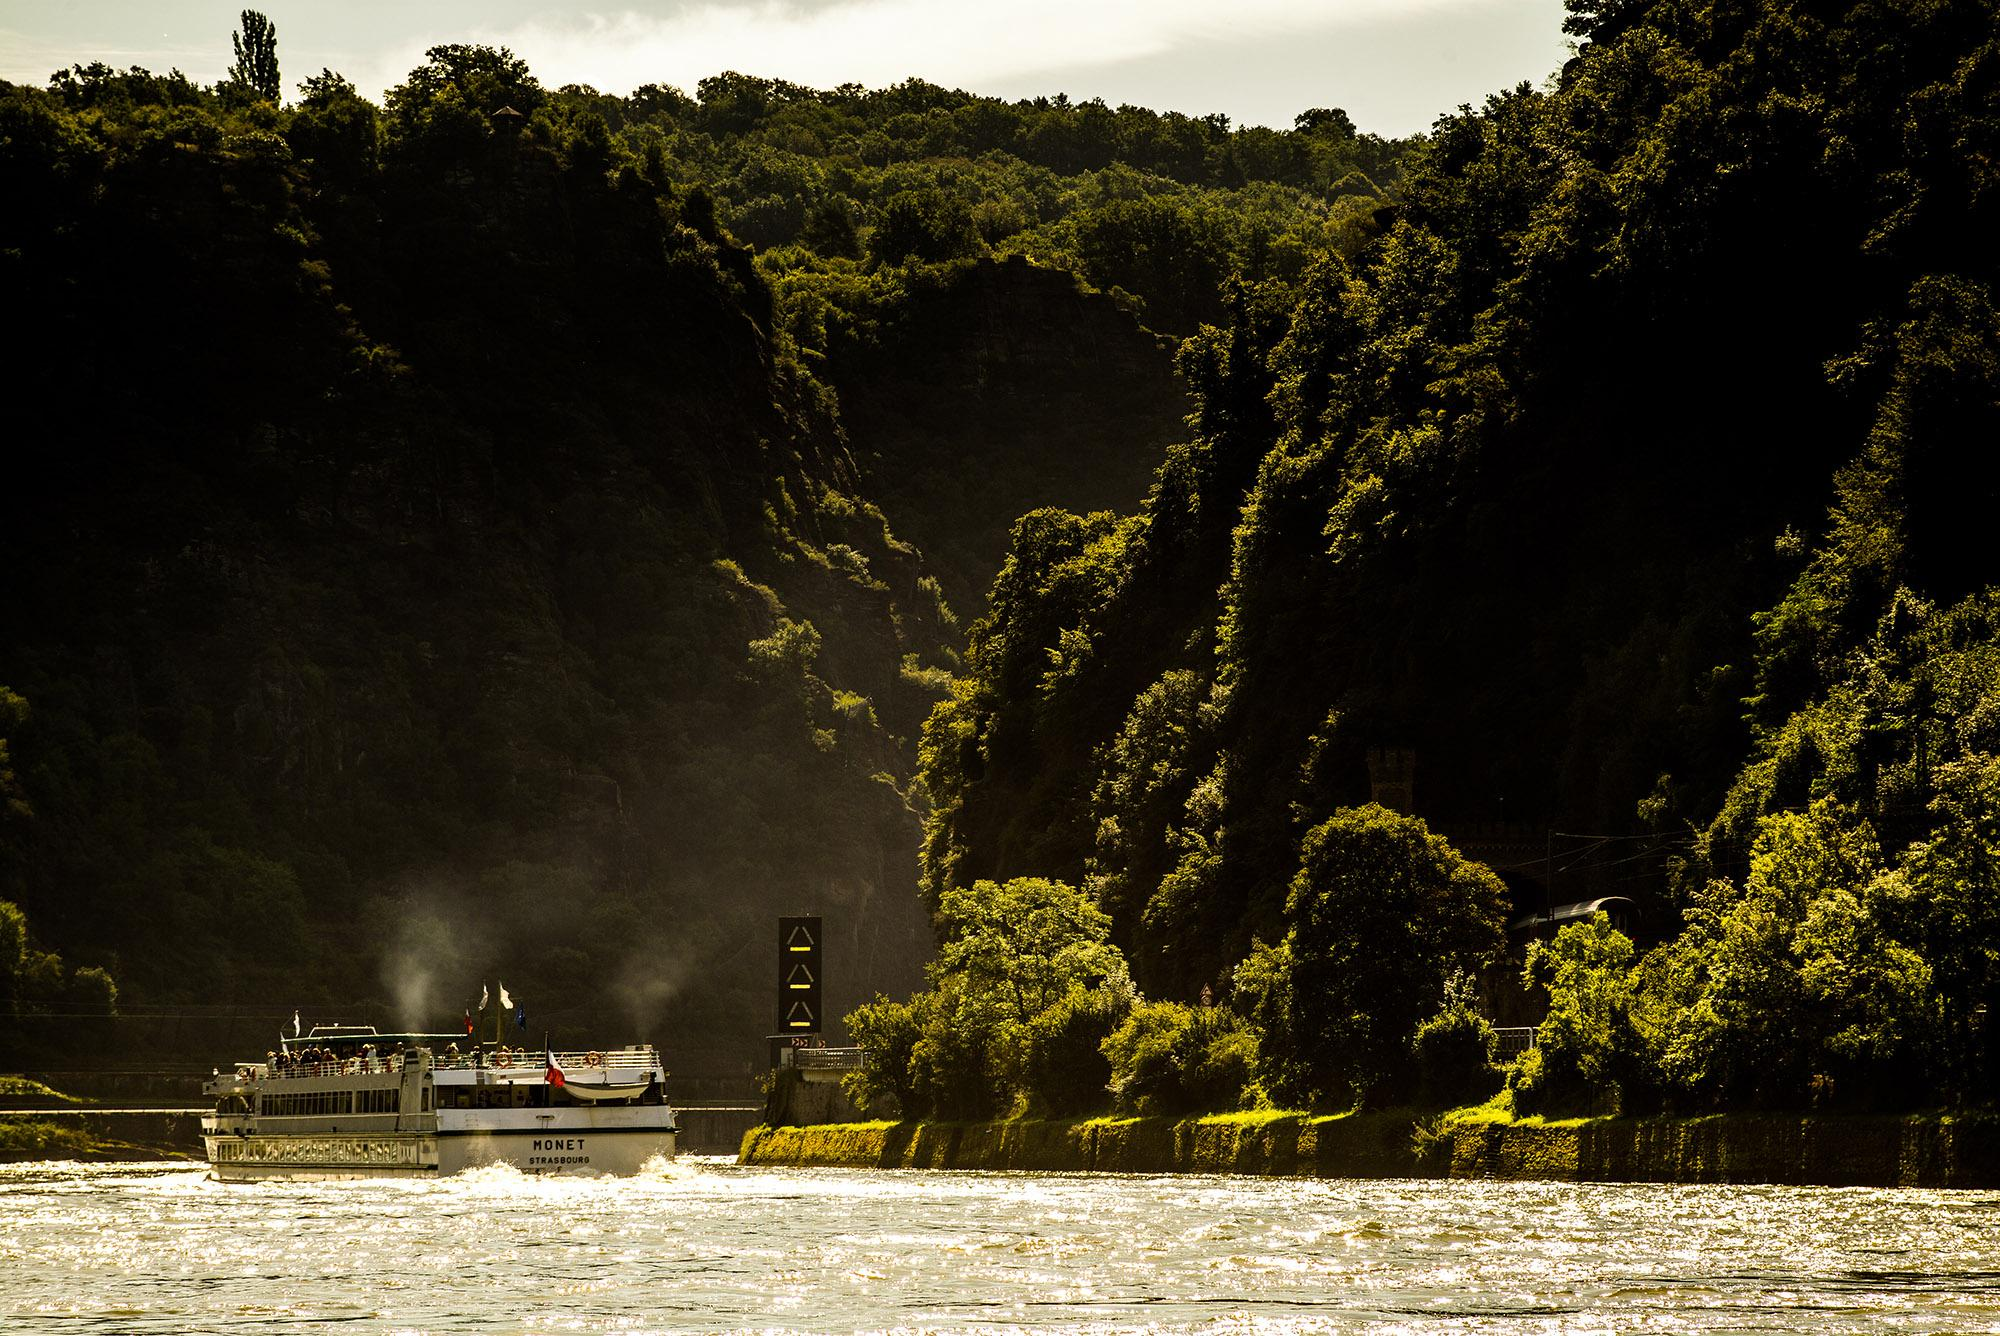 The Upper Middle Rhine Valley is unusually rich in evidence of its cultural heritage and as the scene of many historic events. – © Herbert Piel, Rhein-Touristik Tal der Loreley